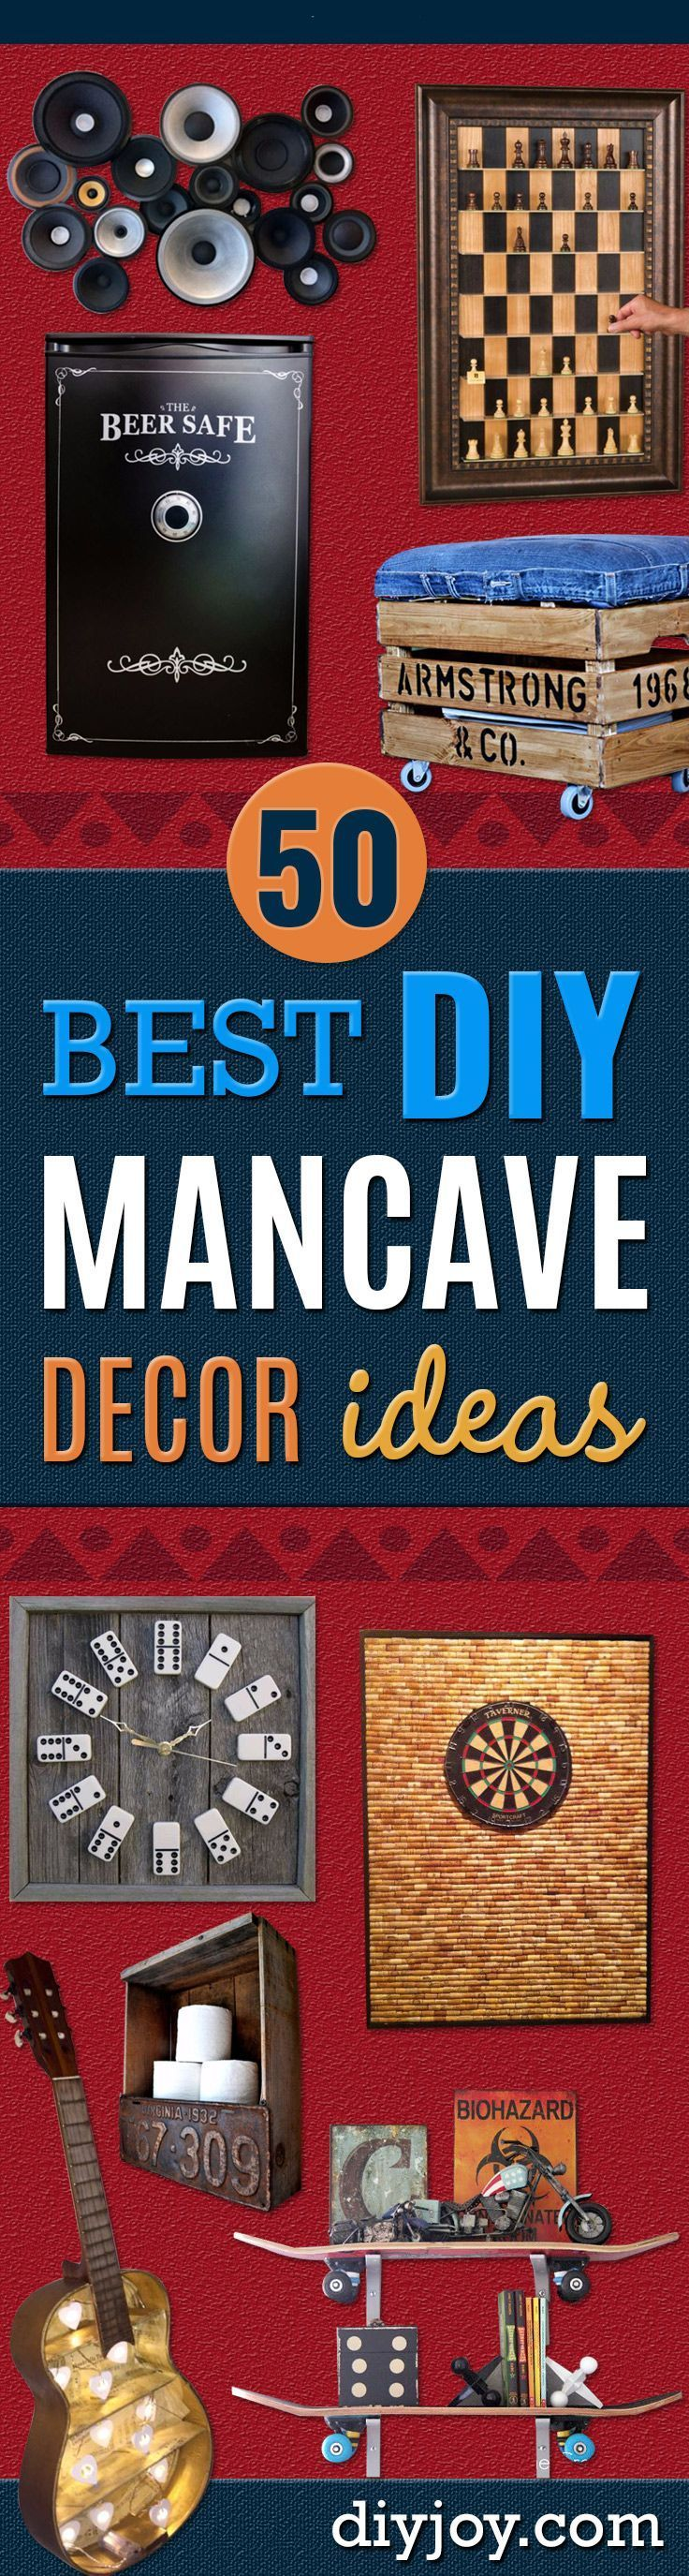 Diy mancave decor ideas step by step tutorials and do it yourself diy mancave decor ideas step by step tutorials and do it yourself projects for your man cave easy diy furniture wall art sinks coolers storage solutioingenieria Image collections